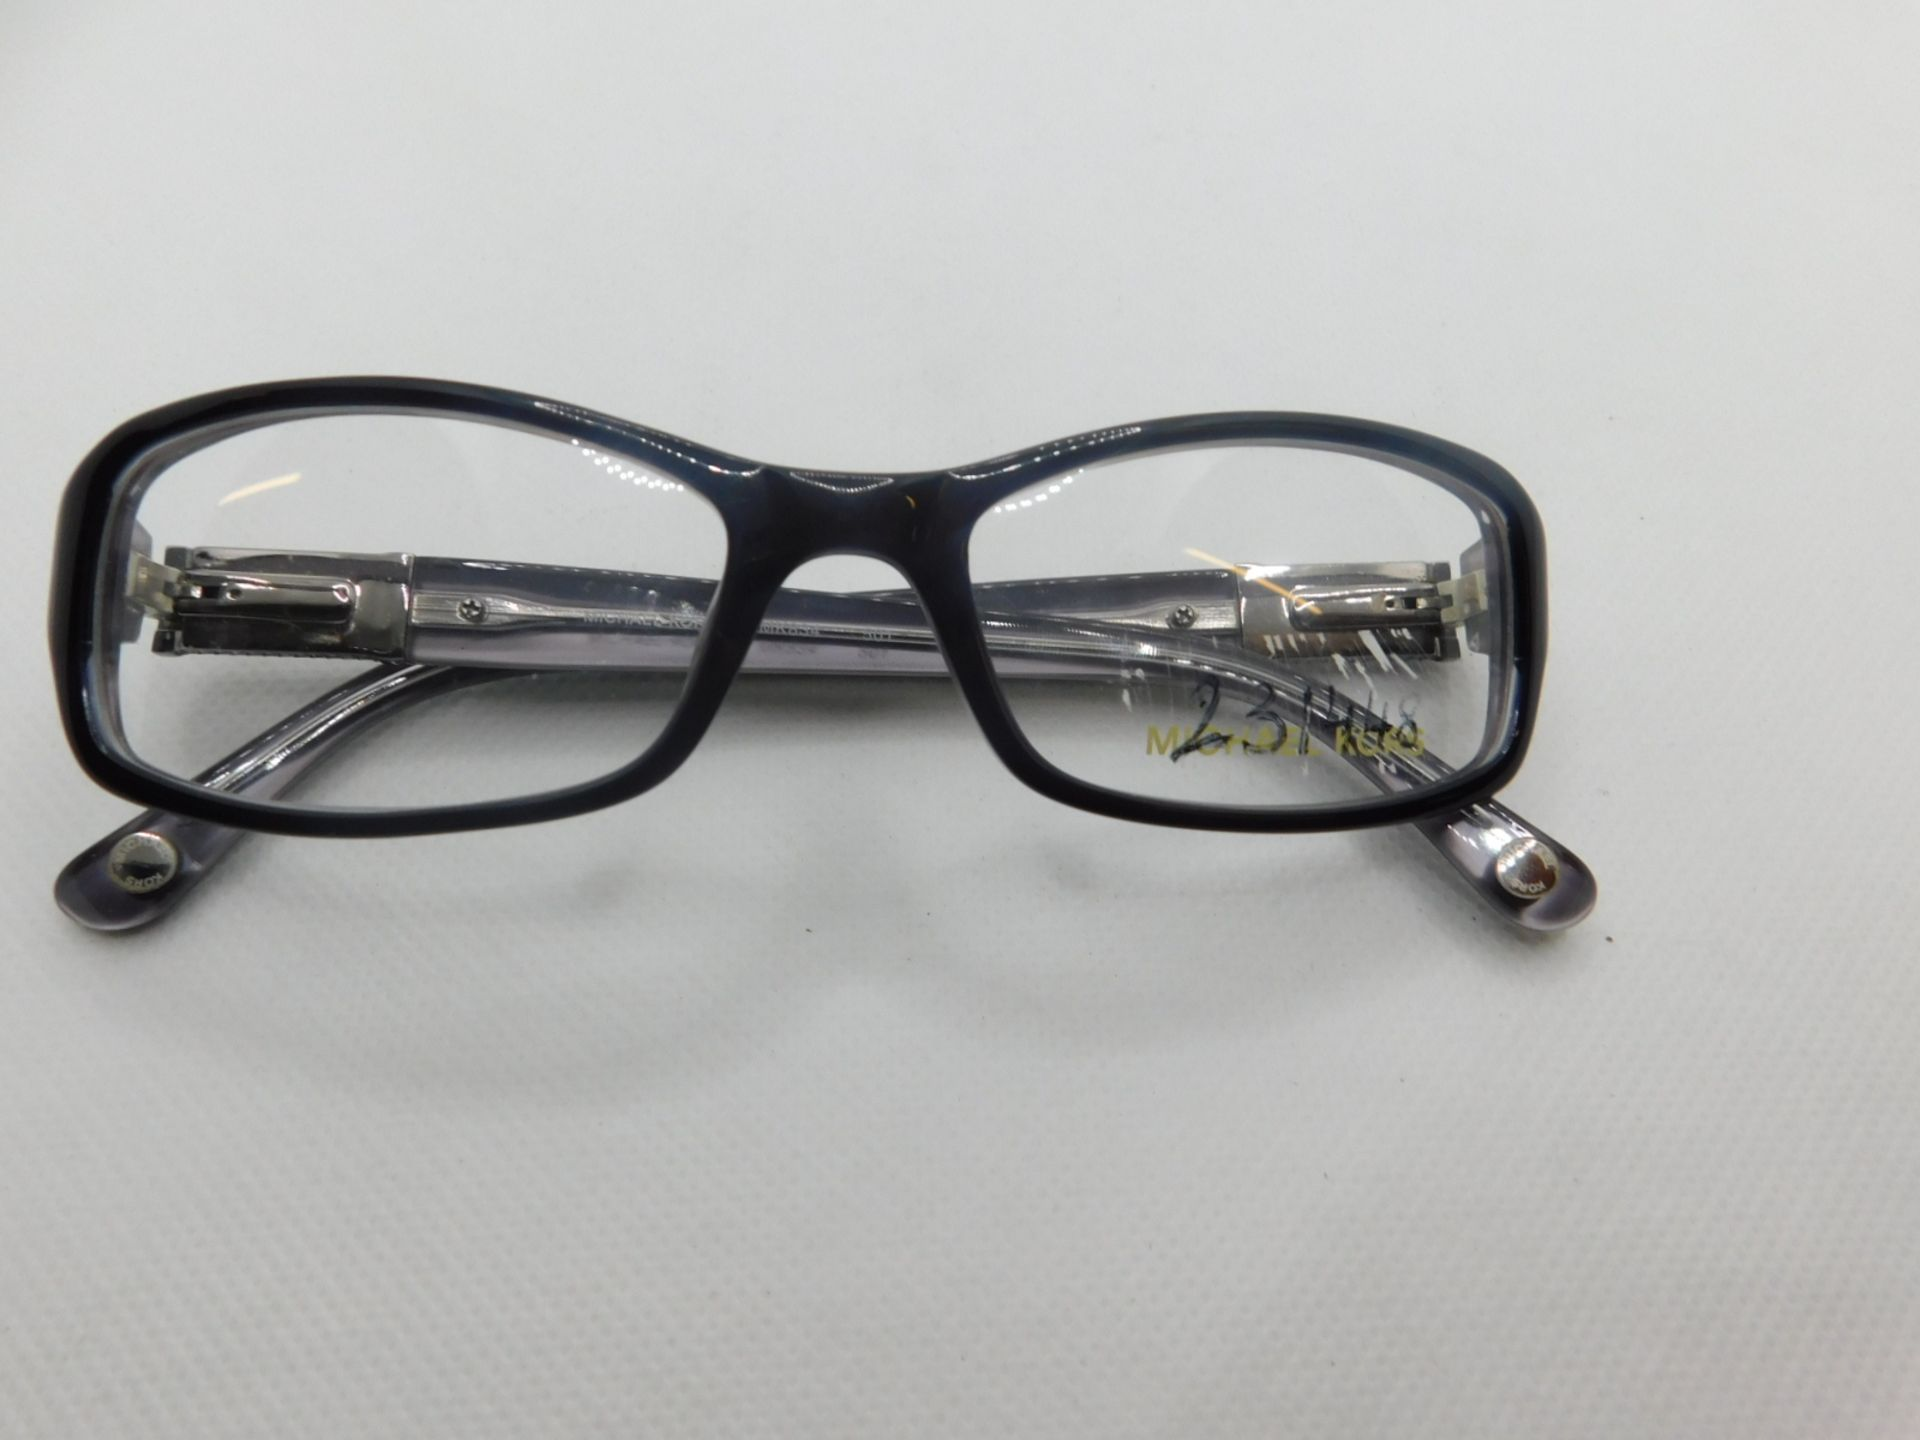 1 PAIR OF MICHAEL KORS GLASSES FRAME WITH POUCH MODEL MK834 RRP £159